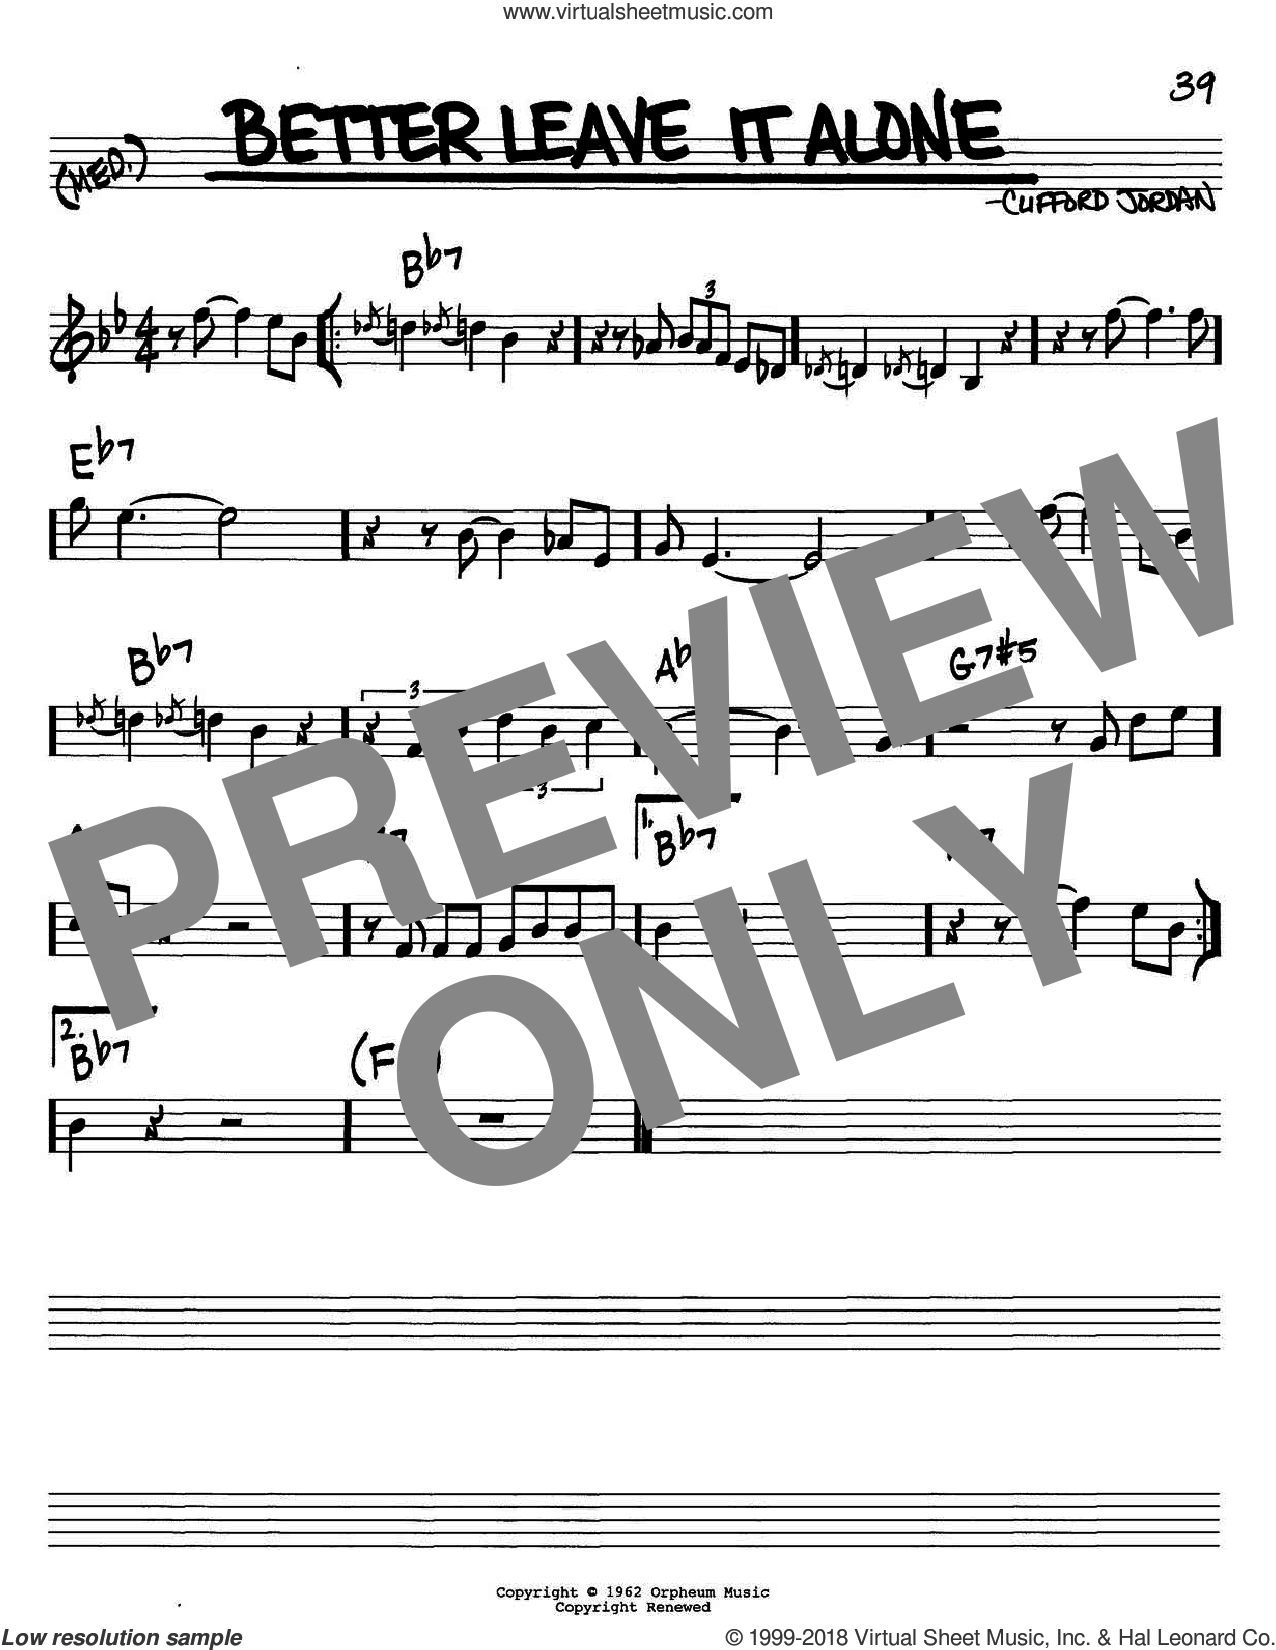 Better Leave It Alone sheet music for voice and other instruments (C) by Clifford Jordan